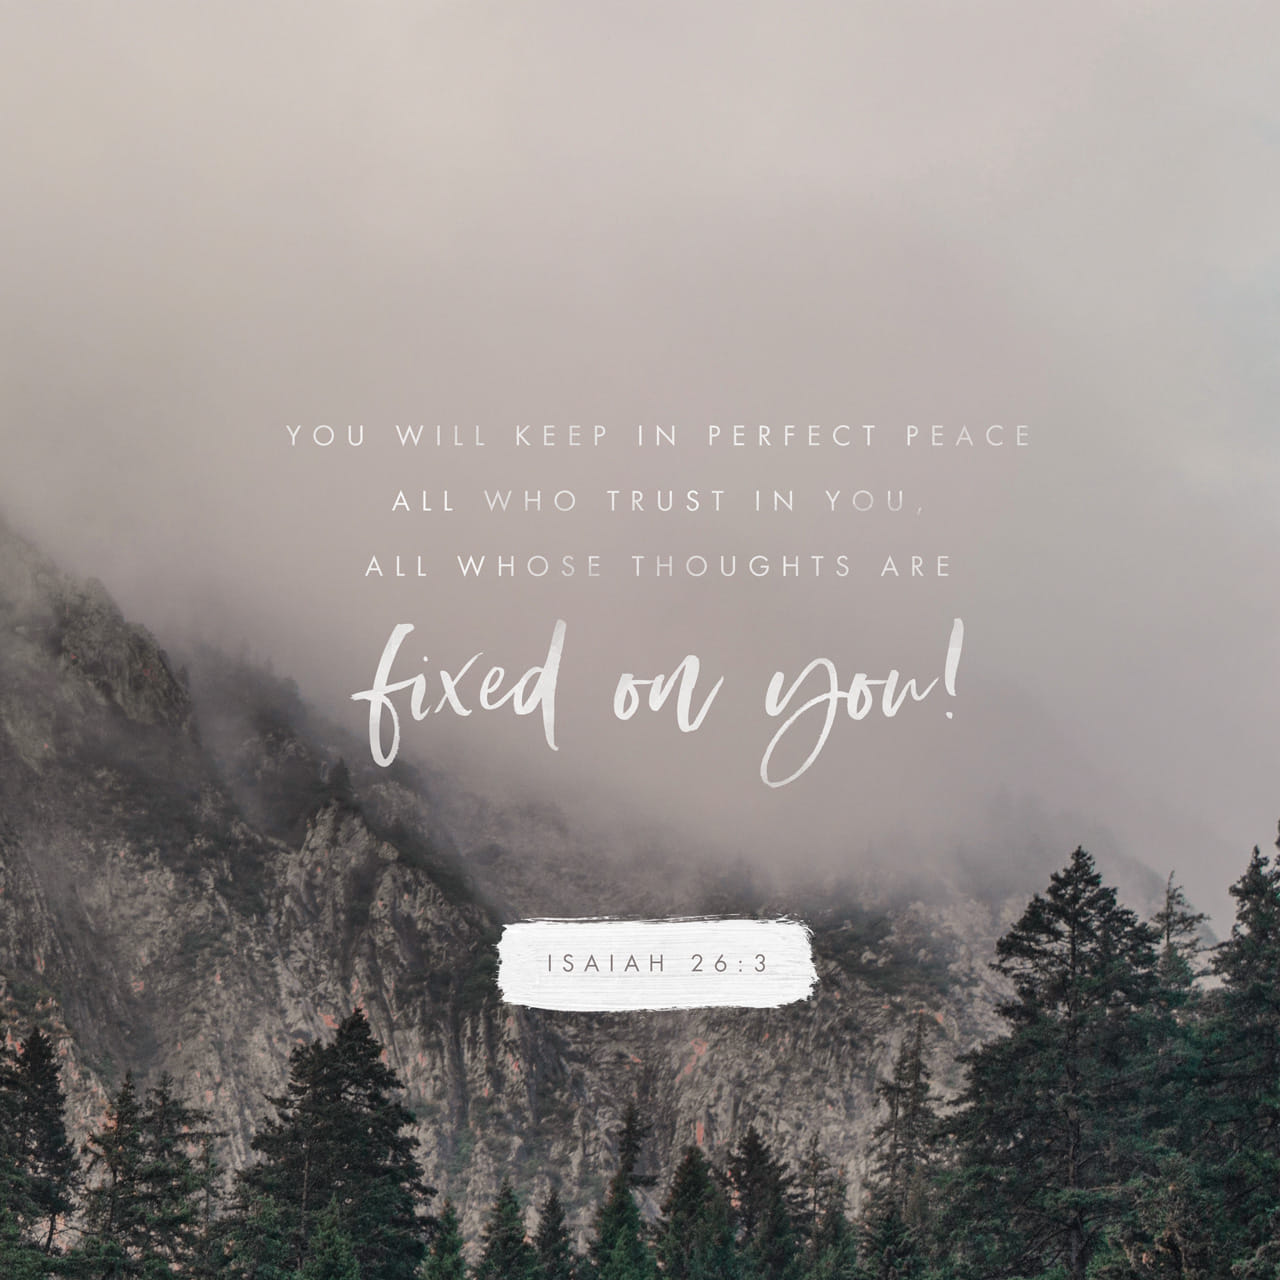 Isaiah 26:3 Thou wilt keep him in perfect peace, whose mind is stayed on thee: because he trusteth in thee. | King James Version (KJV)